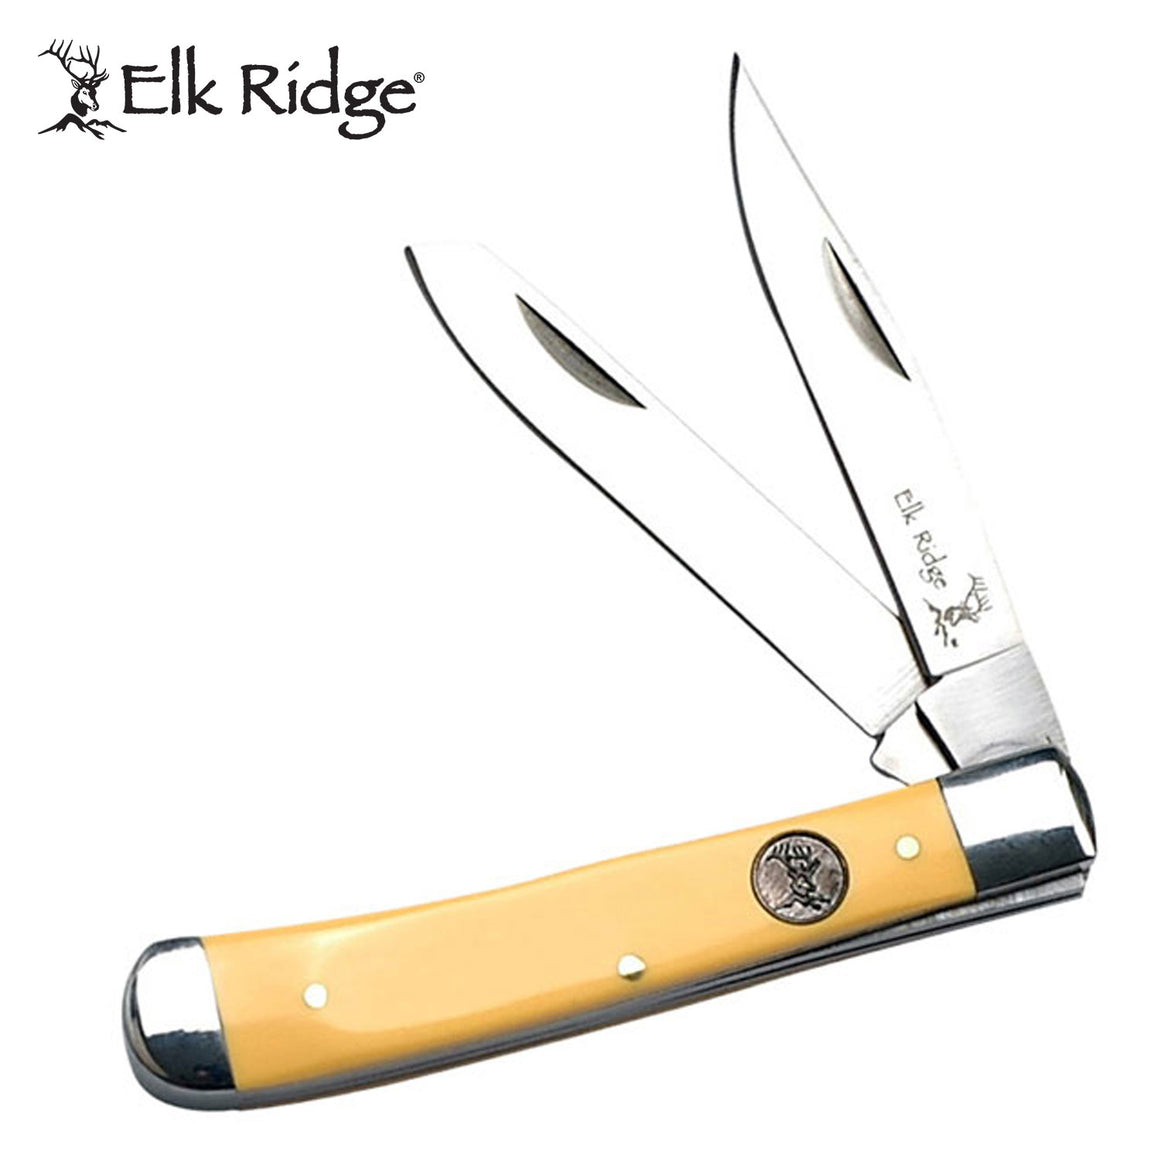 Elk Ridge ER-220MY Gentleman's Knife